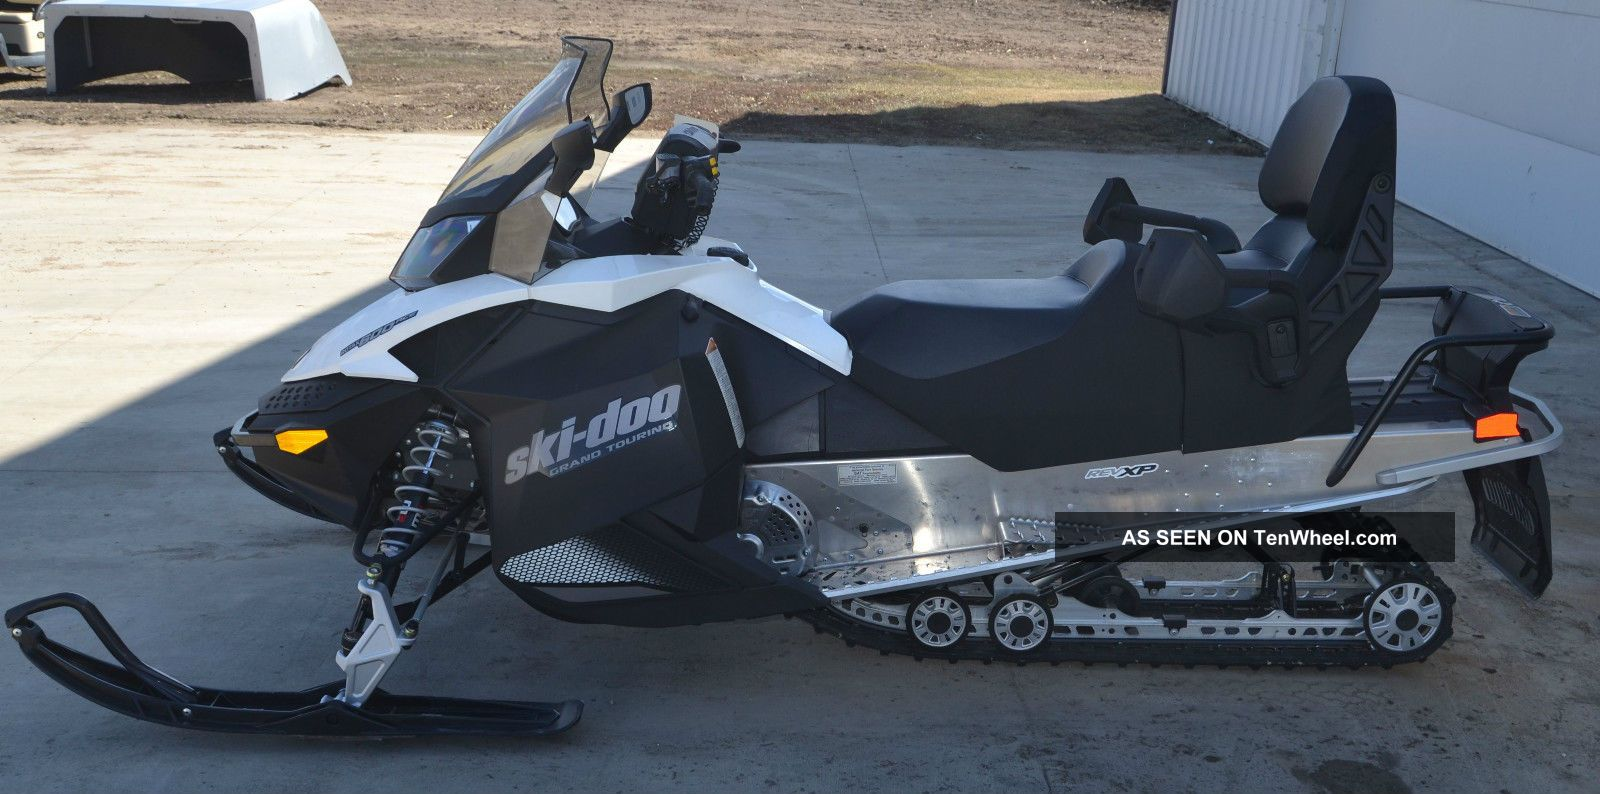 2013 Ski Doo Grand Touring HD Wallpapers Download free images and photos [musssic.tk]